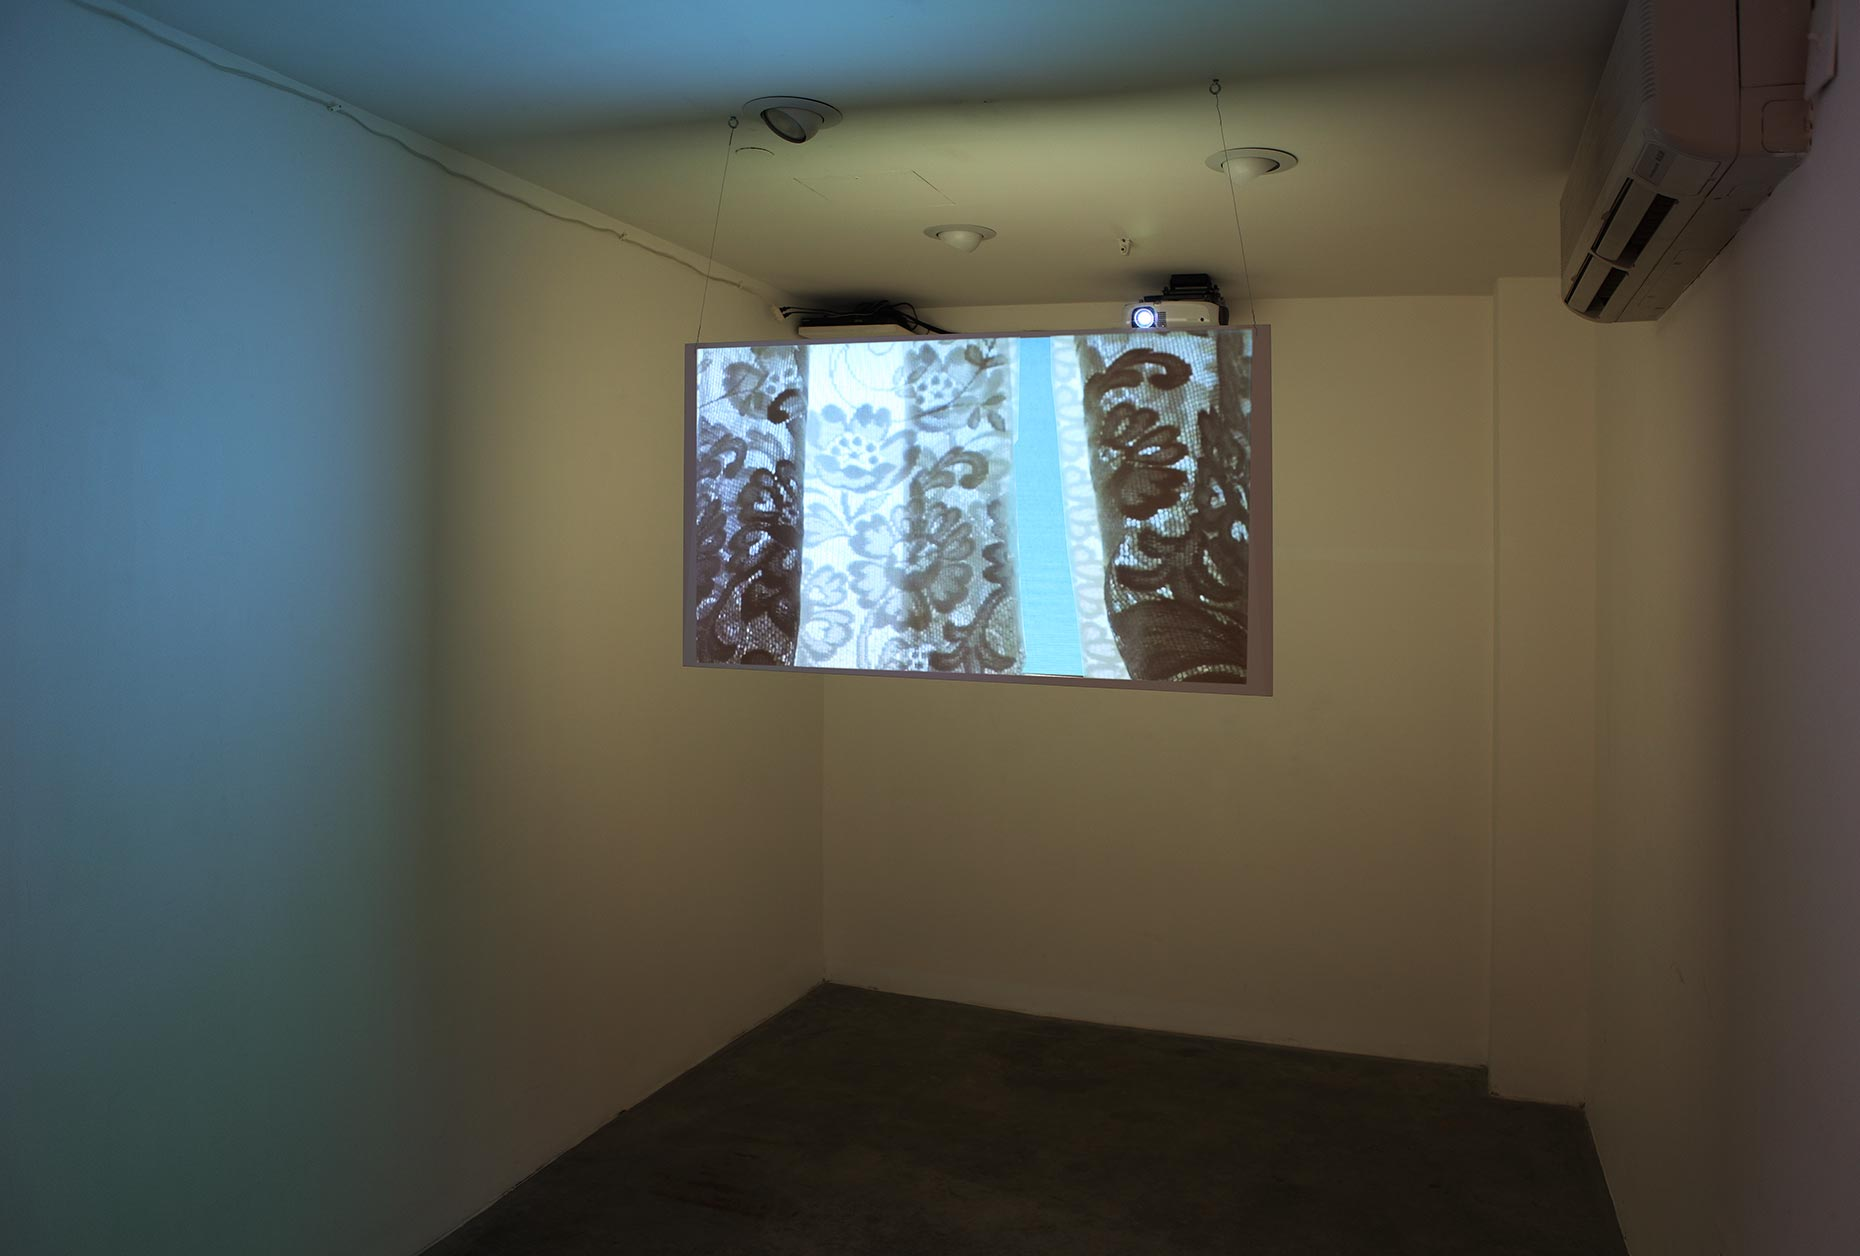 Michael Gaillard  |  Studio Work  |  Screen, Install 1